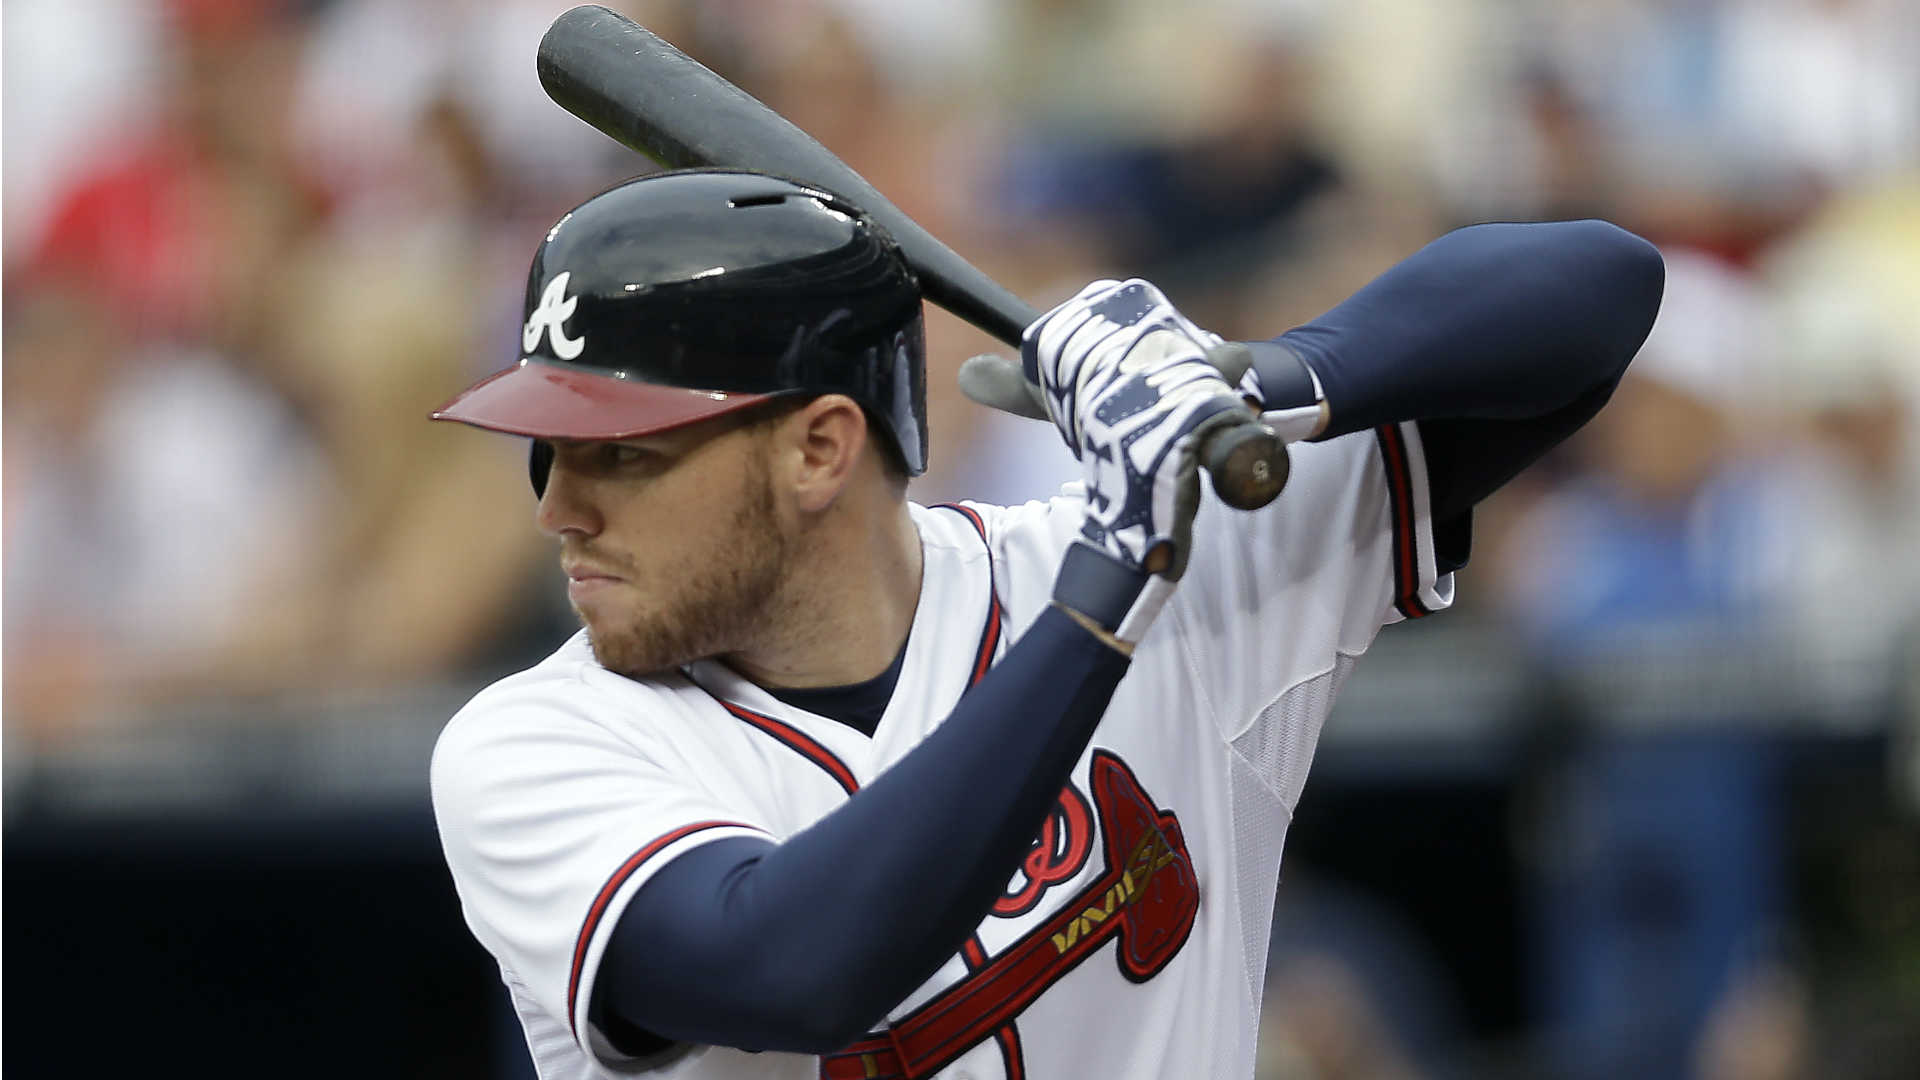 Fantasy baseball team report: Atlanta Braves